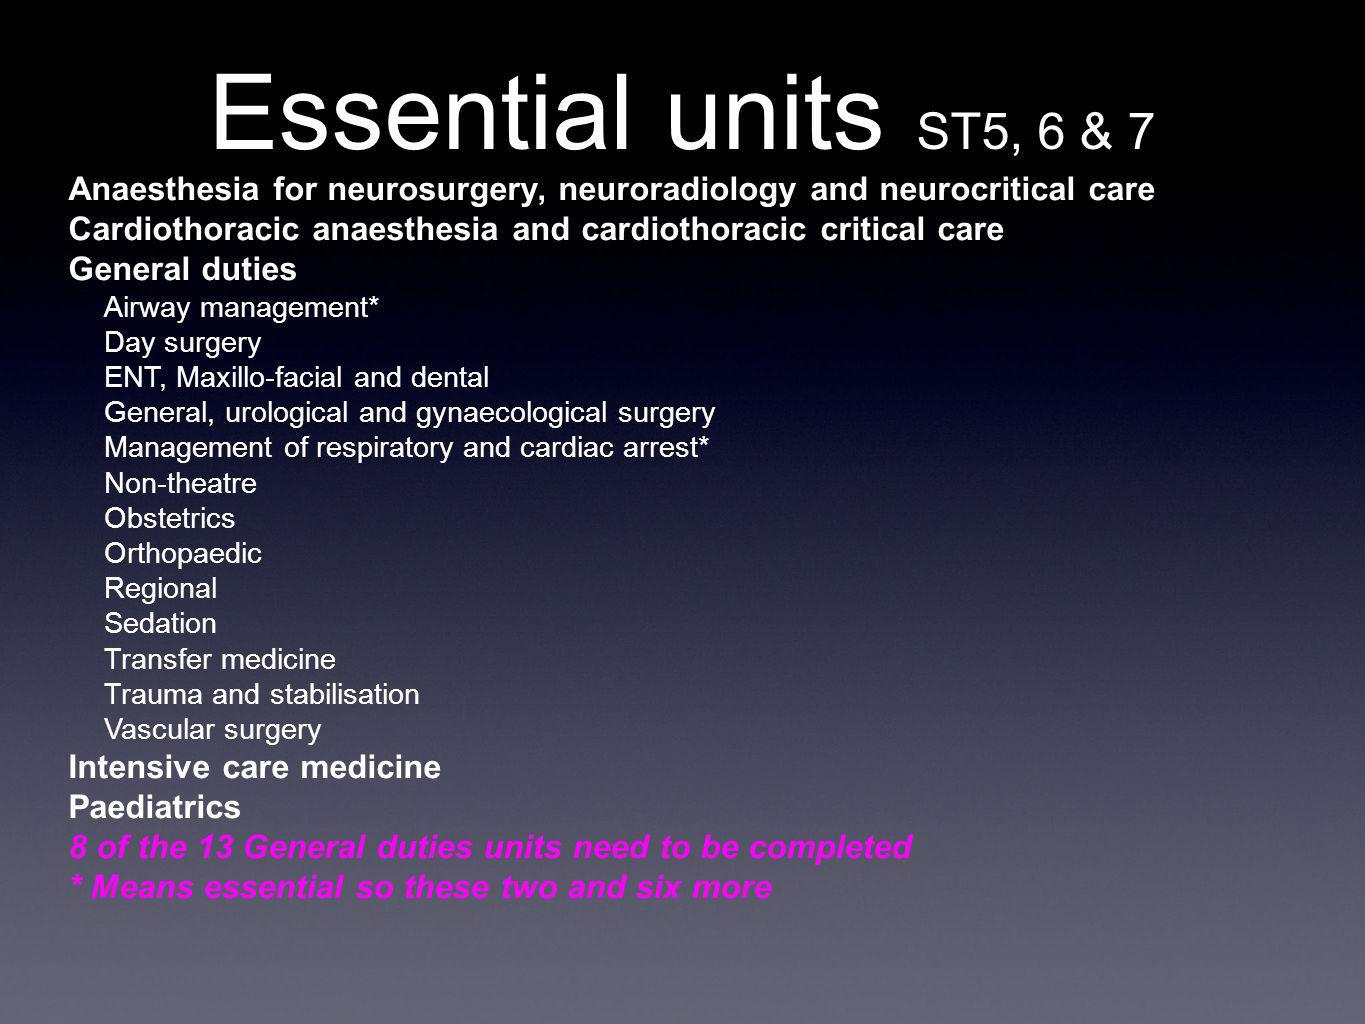 Anaesthesia for neurosurgery, neuroradiology and neurocritical care Cardiothoracic anaesthesia and cardiothoracic critical care General duties Airway